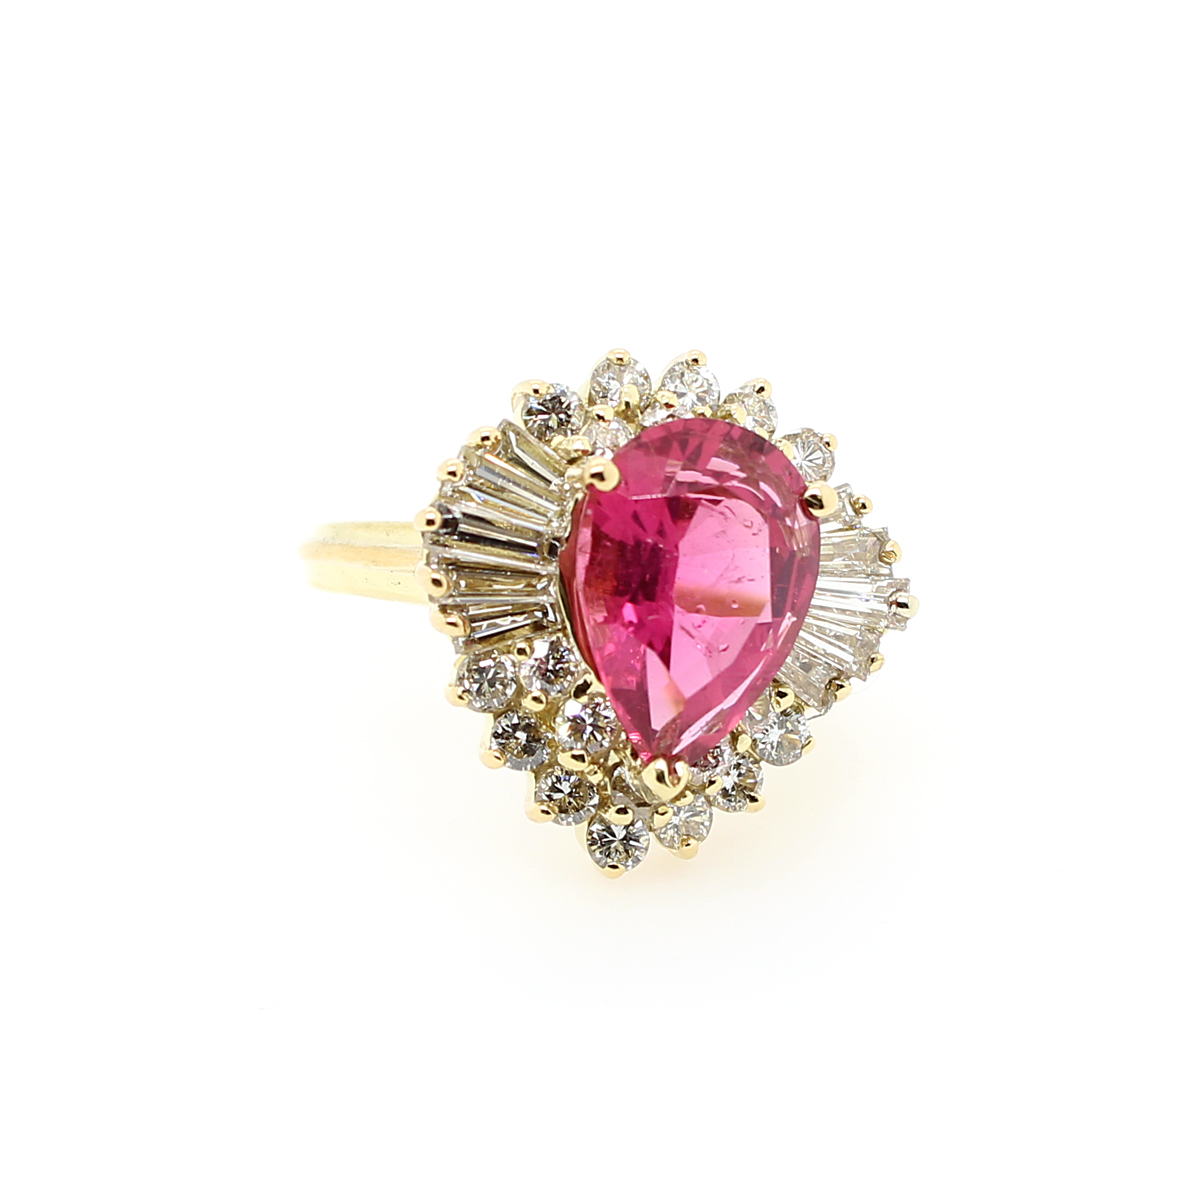 Vintage 18 Karat Yellow Gold Pink Rhodolite Garnet and Diamond Ring